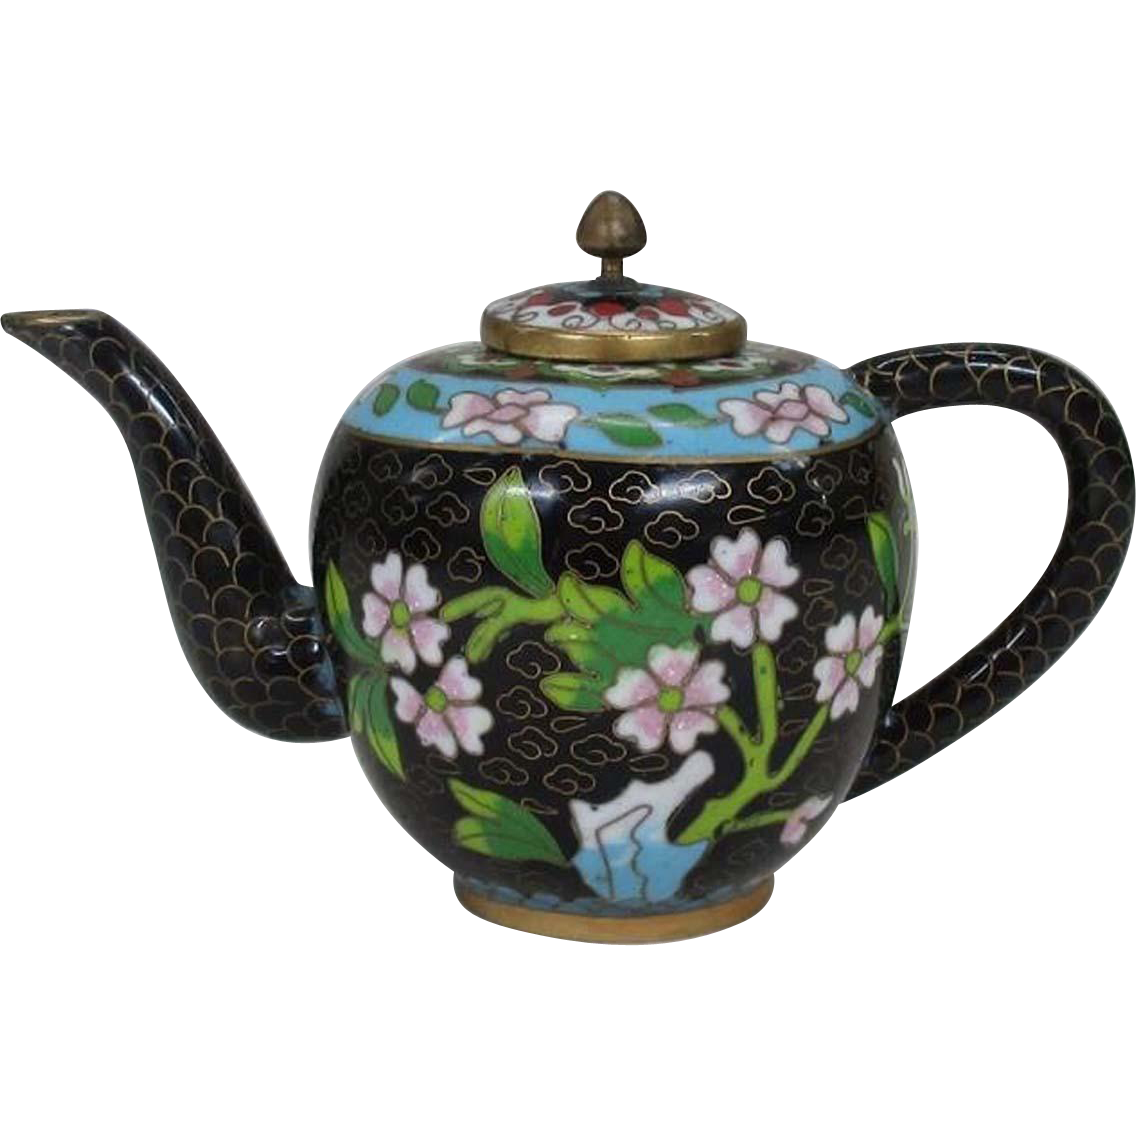 Chinese Vintage Shippo-yaki Cloisonne Floral Teapot